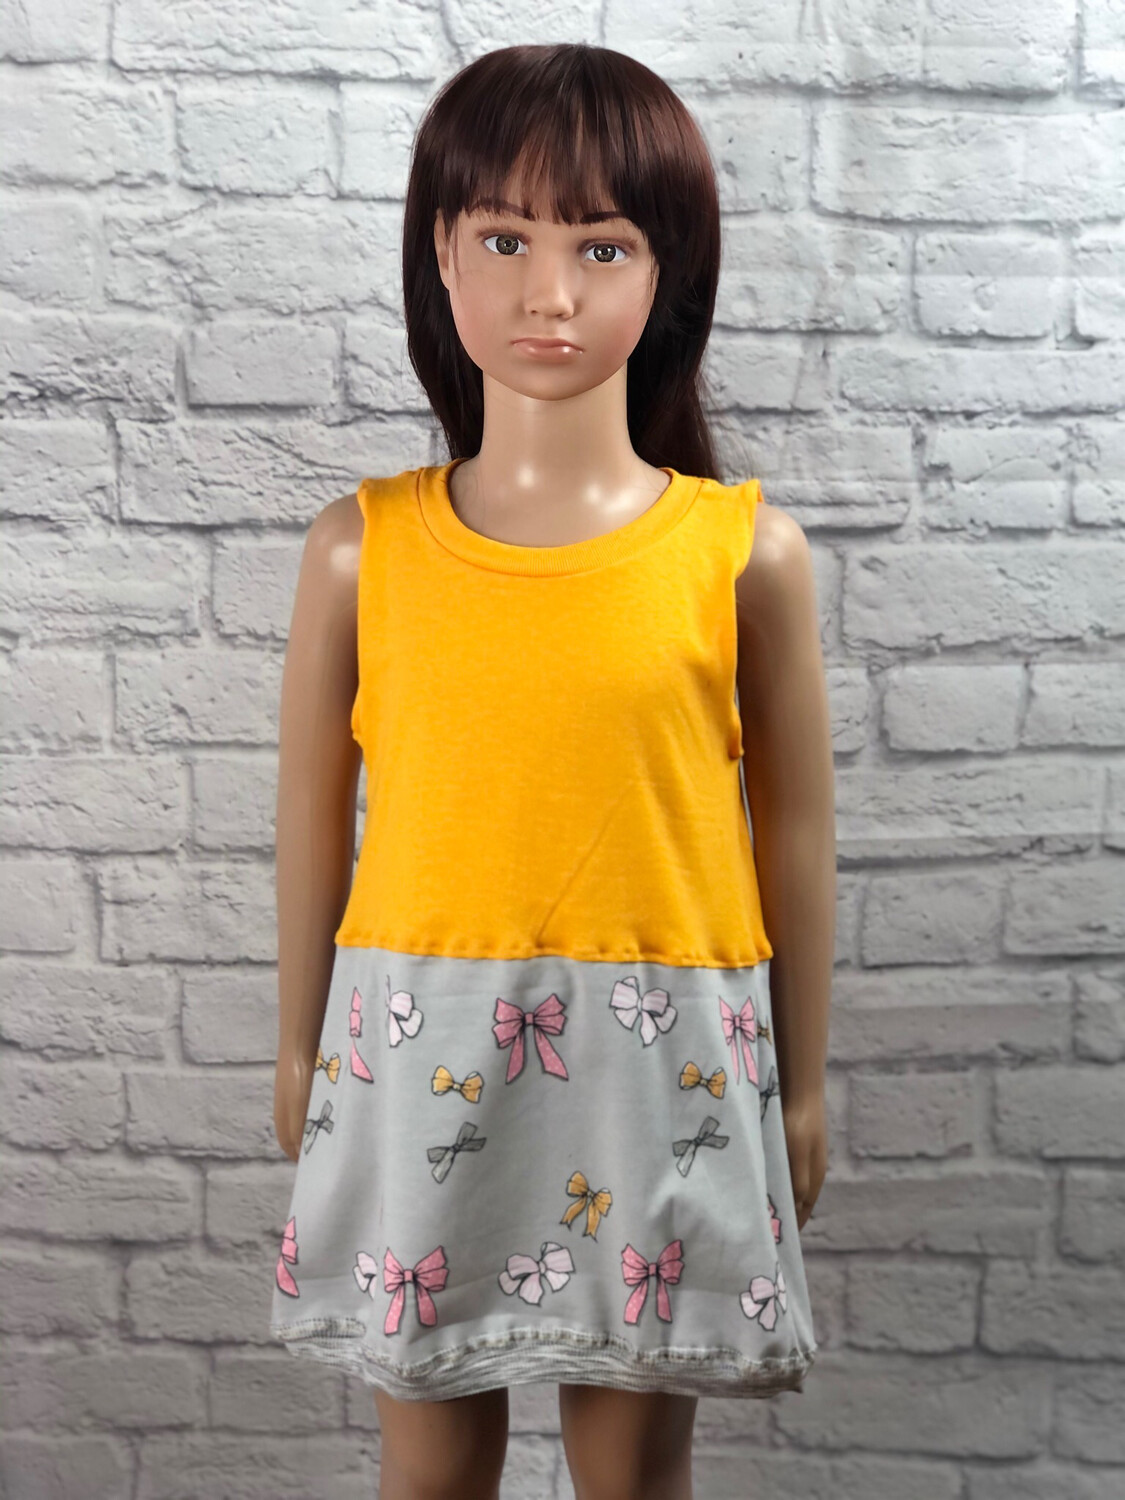 S Threads Kids Upcycled Yellow Dress W Bows Print Size Child Small